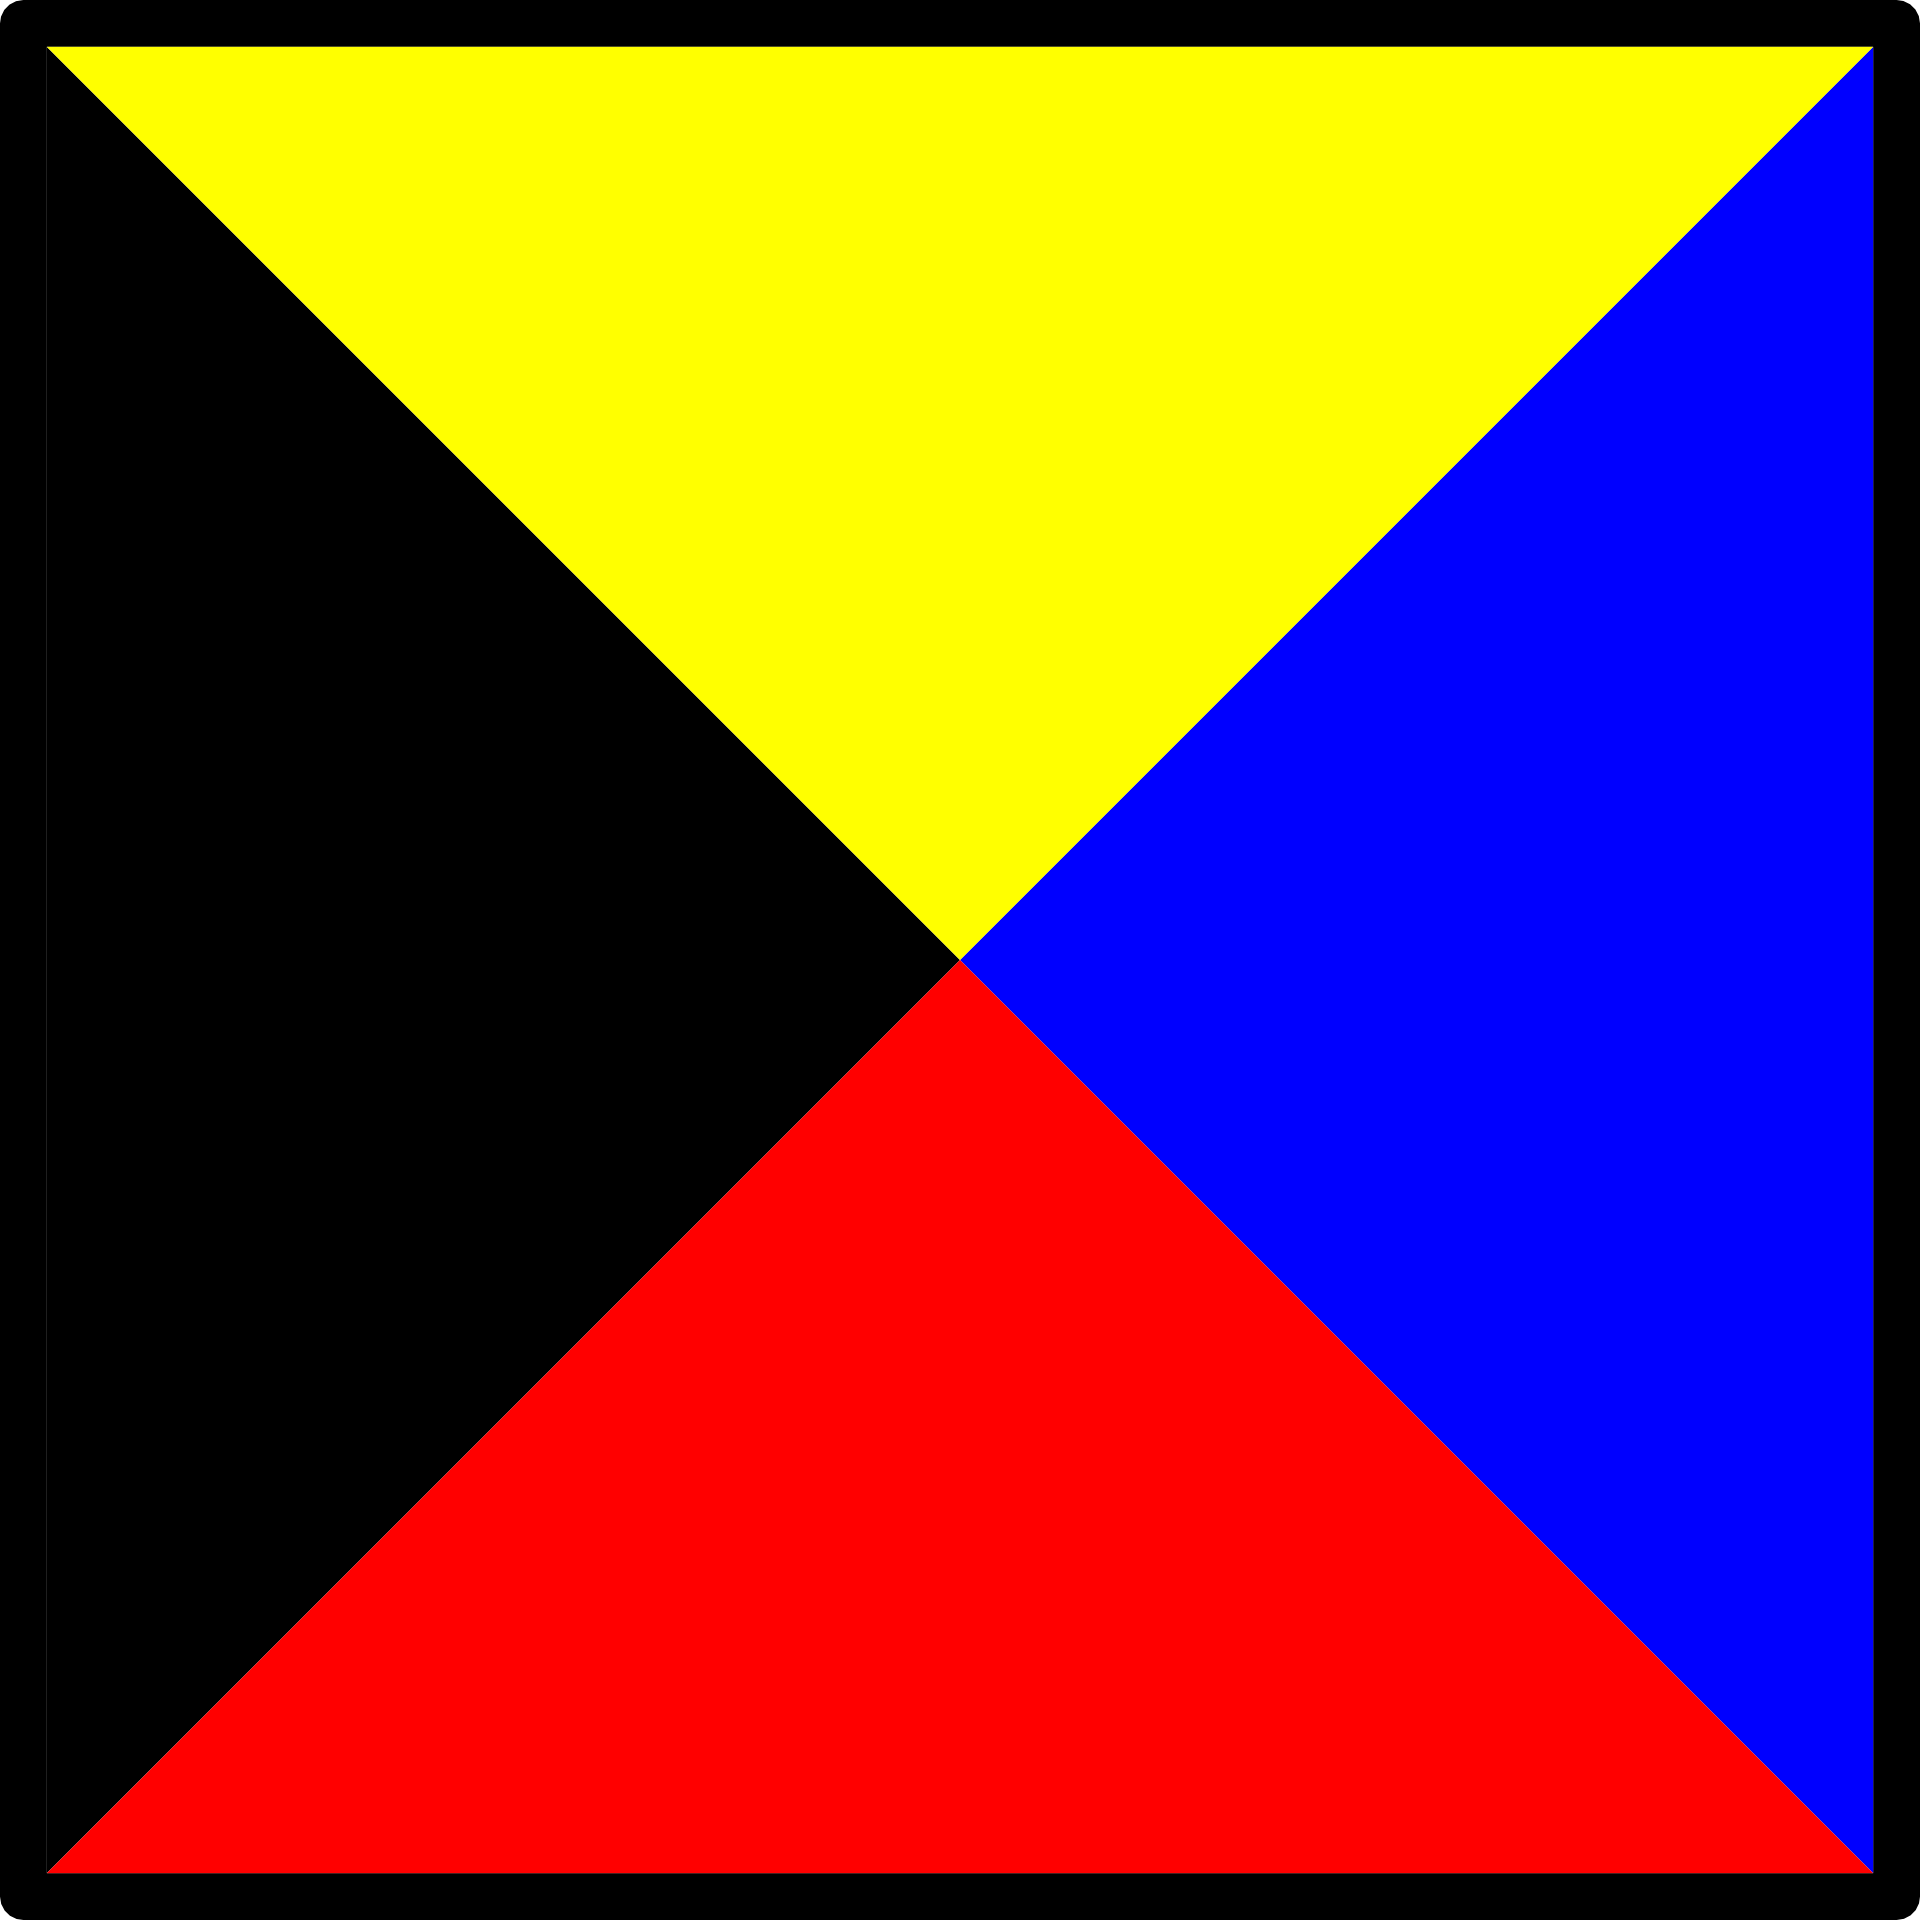 Flag With The Black Yellow Blue And Red Colors Free Image